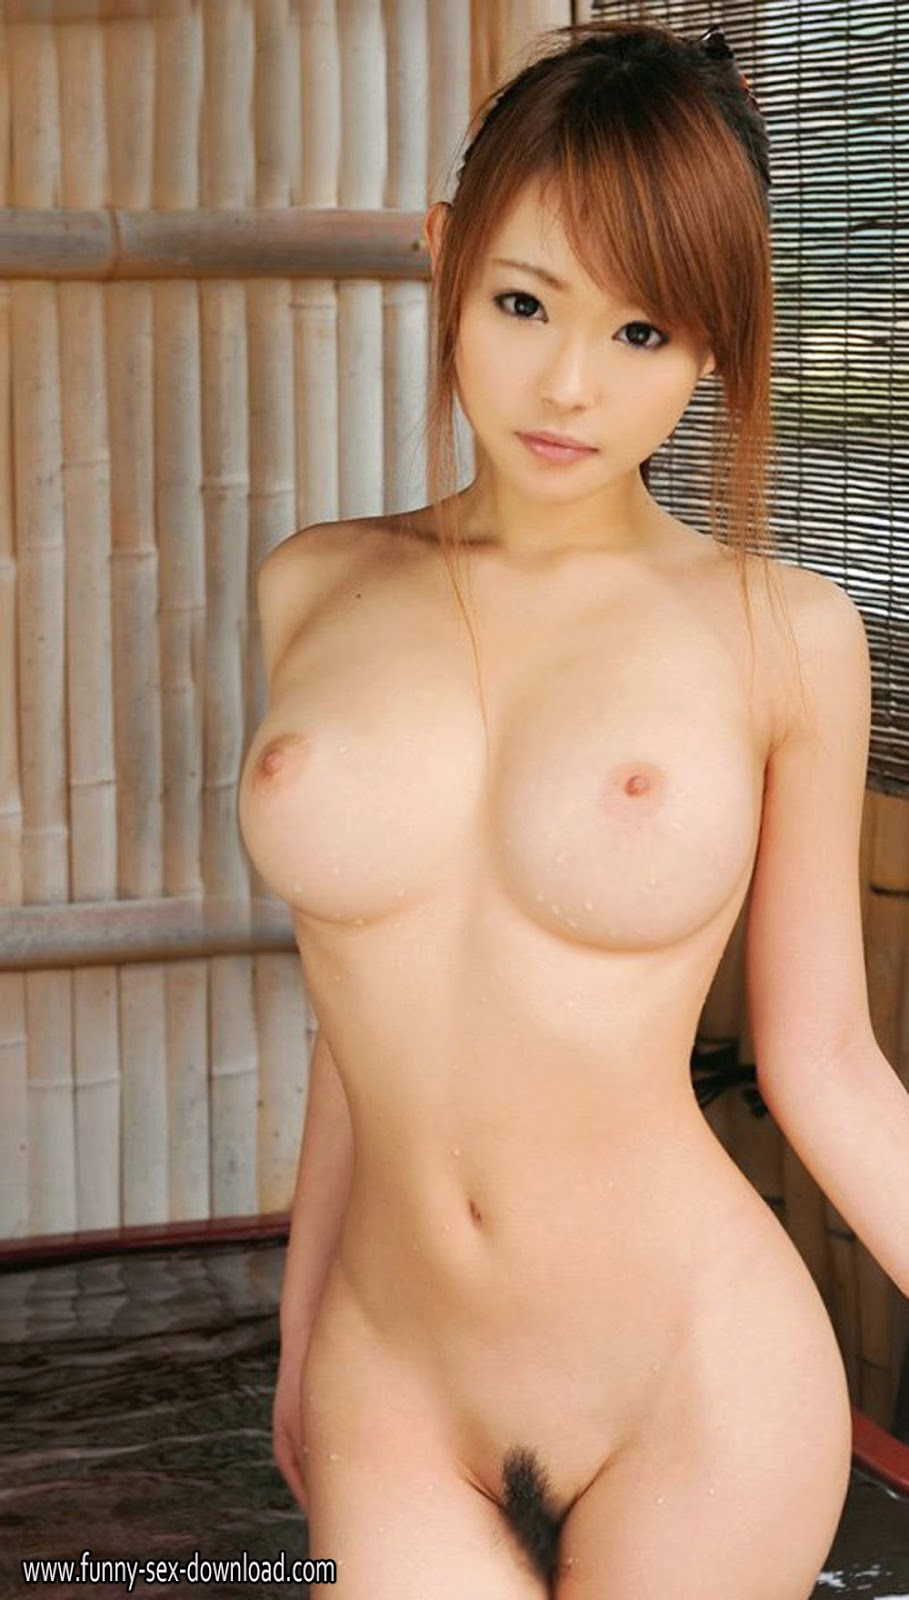 Free Nude Japanese Women 70